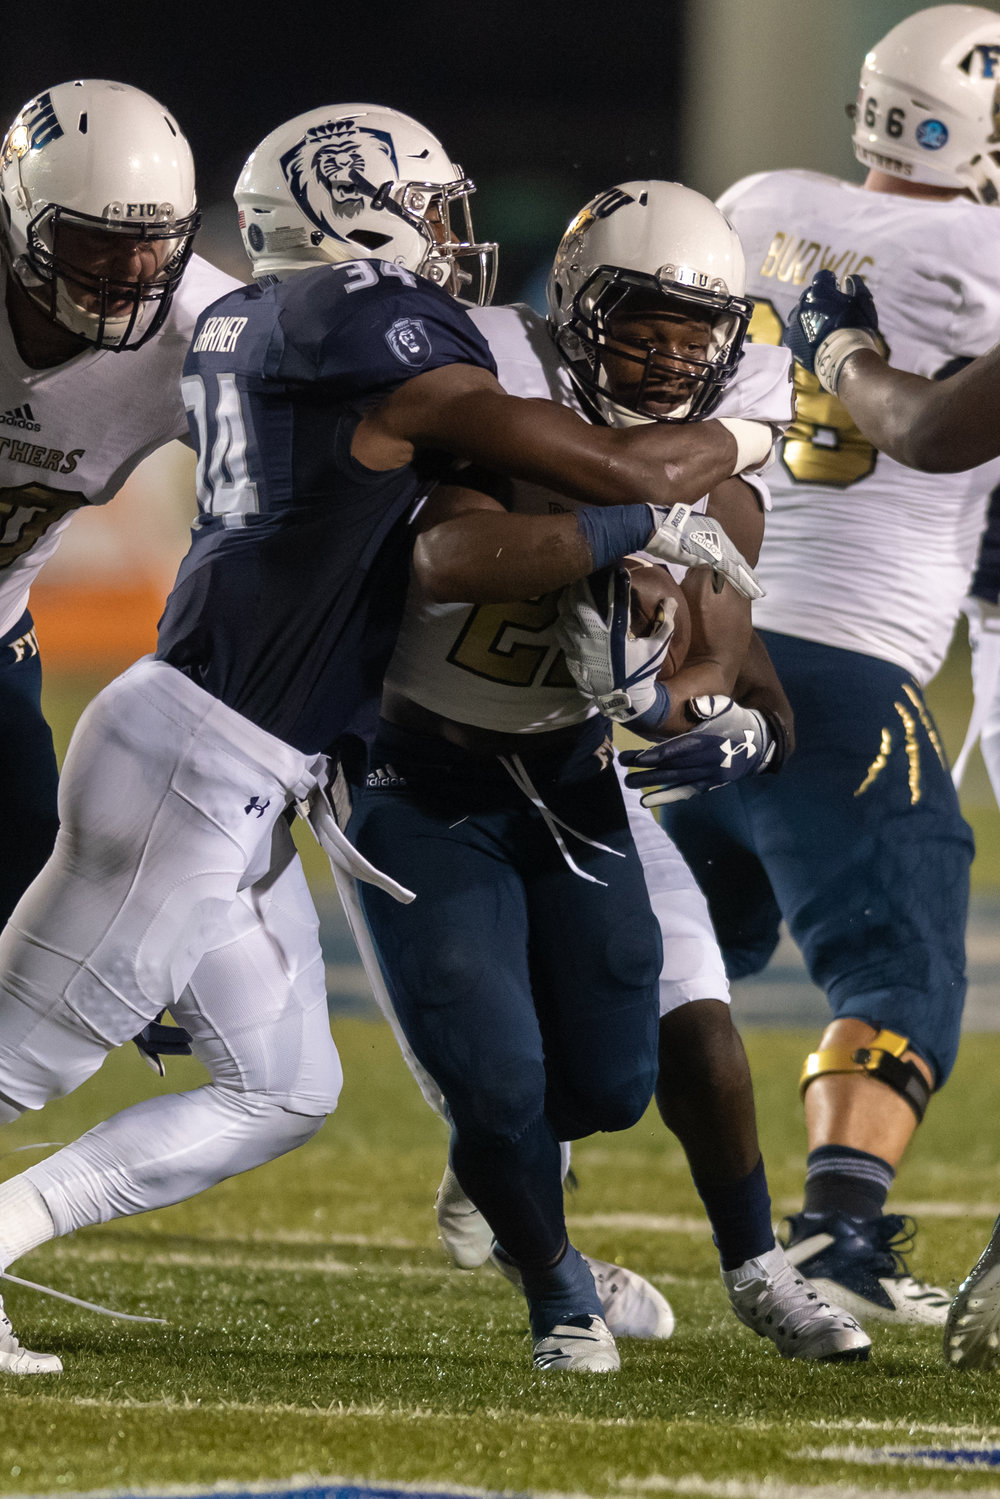 FIU Panthers running back Shawndarrius Phillips (22) runs the ball under pressure from Old Dominion Monarchs cornerback Joe Joe Headen (24) during the Saturday, Sept. 8, 2018 game held at Old Dominion University in Norfolk, Virginia. The Monarchs lead 14 to 0 during the second quarter.